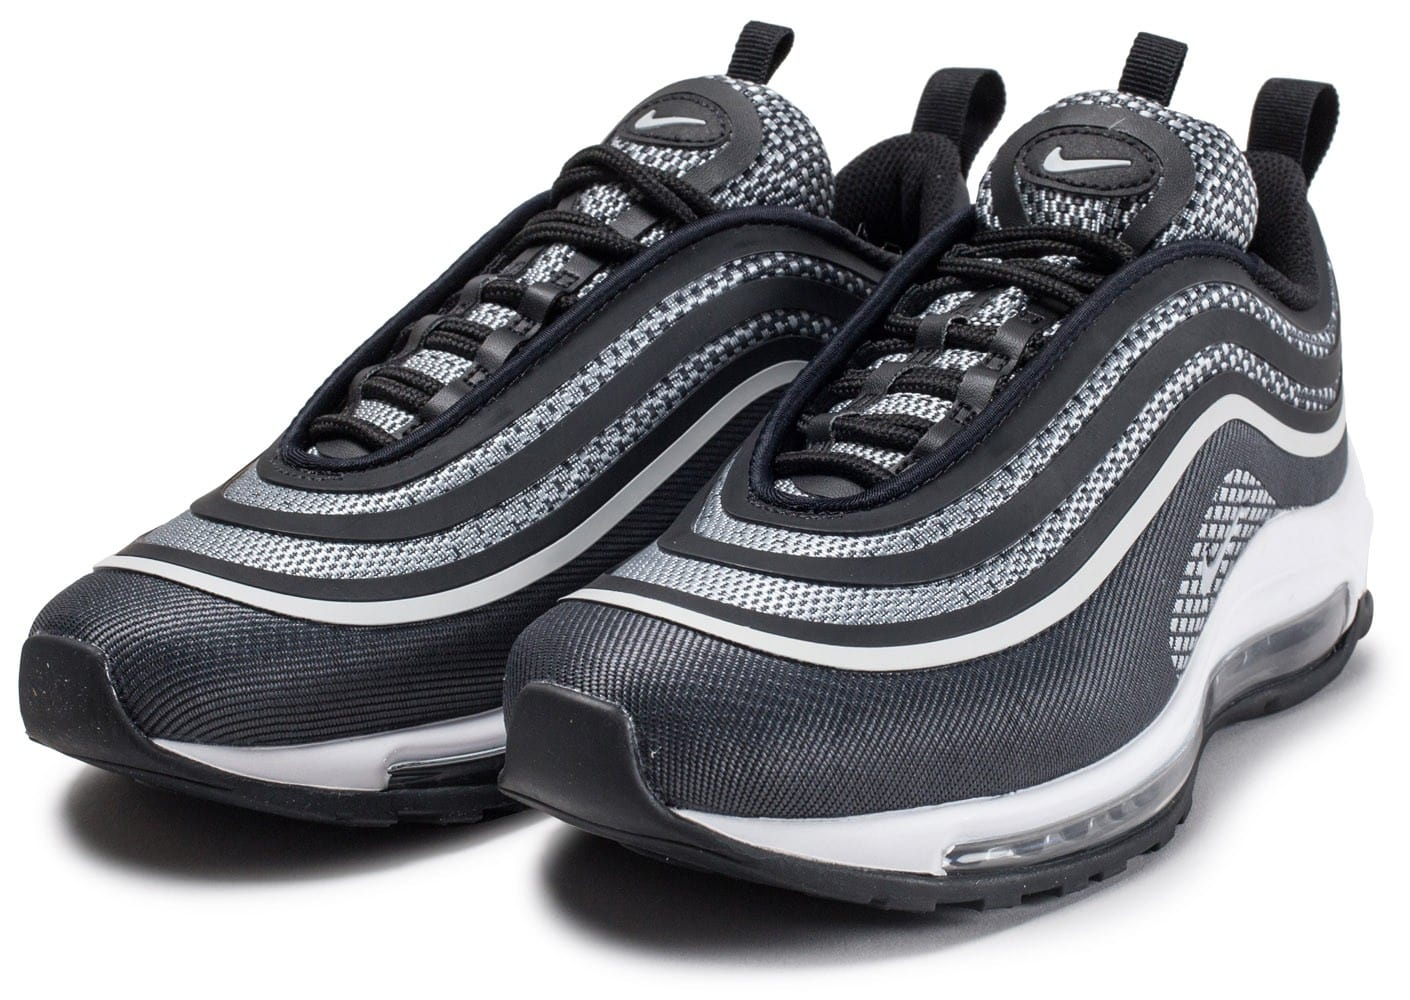 nike air max 97 ultra 39 17 noire et grise chaussures baskets femme chausport. Black Bedroom Furniture Sets. Home Design Ideas